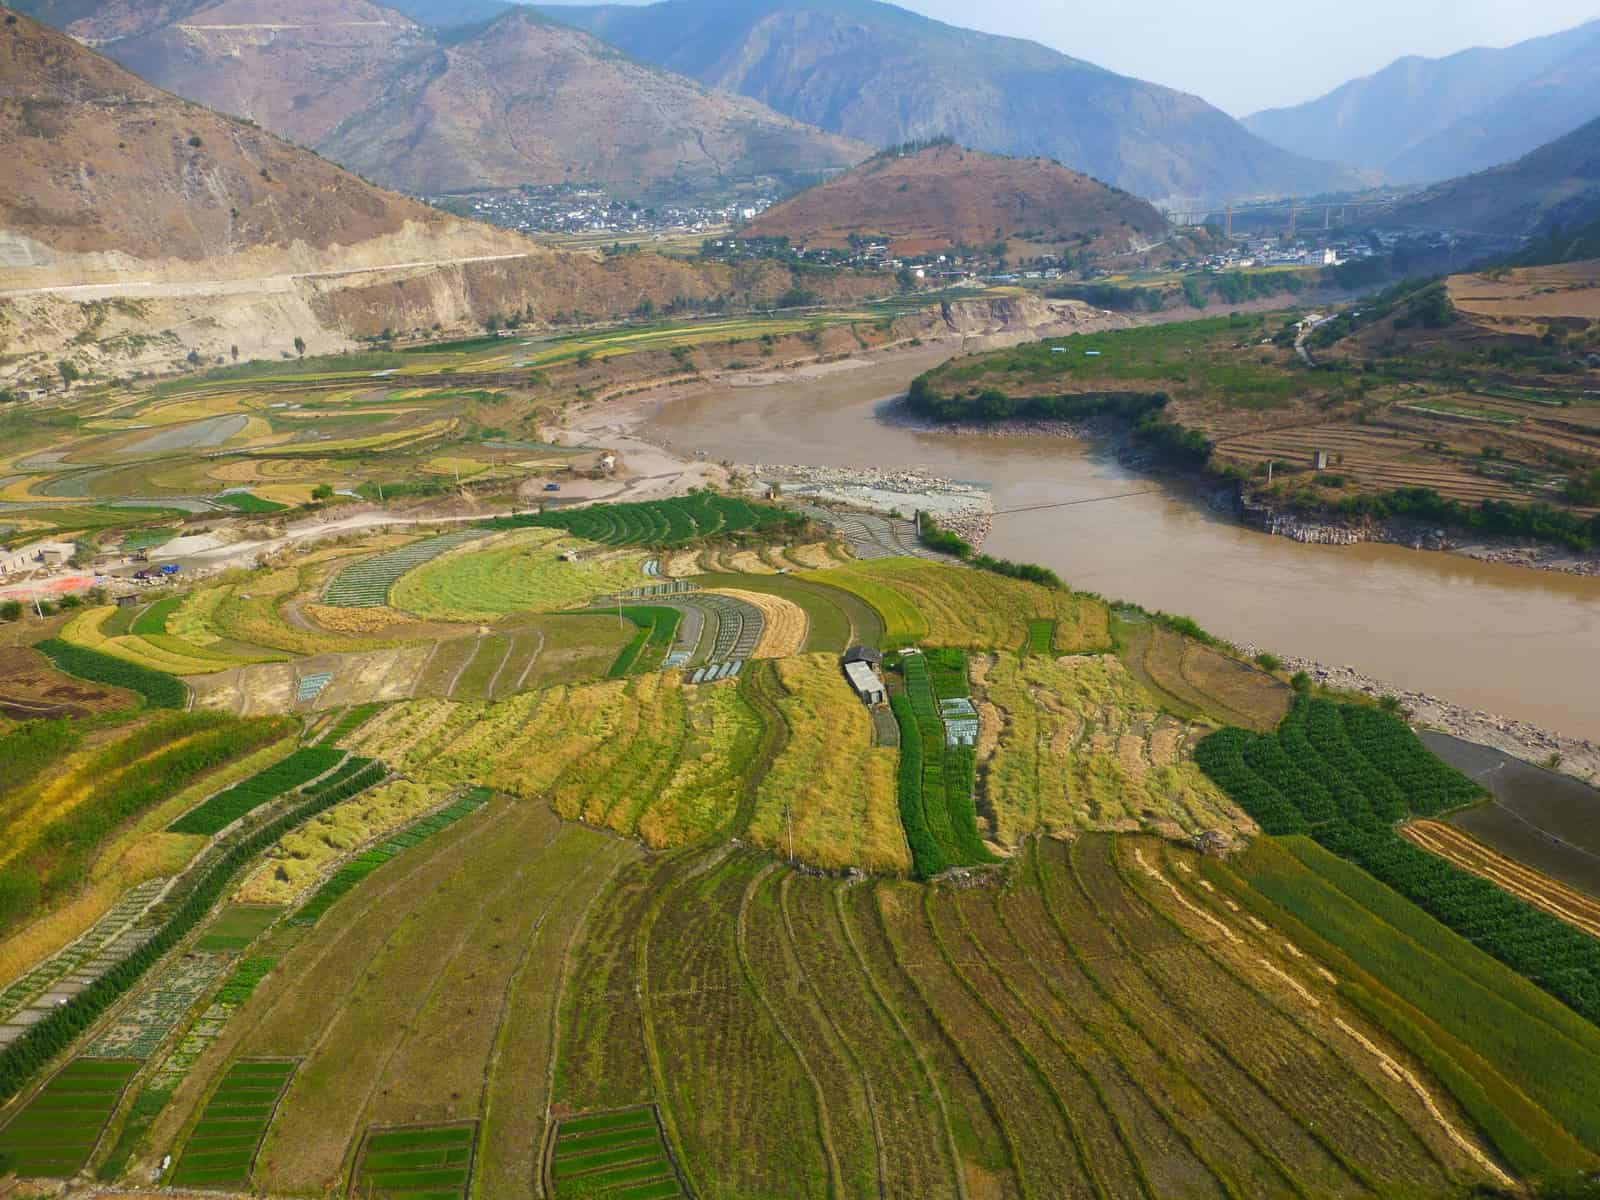 Lancang-Mekong River provides important ecosyetem services and supports social and economic development in the region(photo by Daming He)